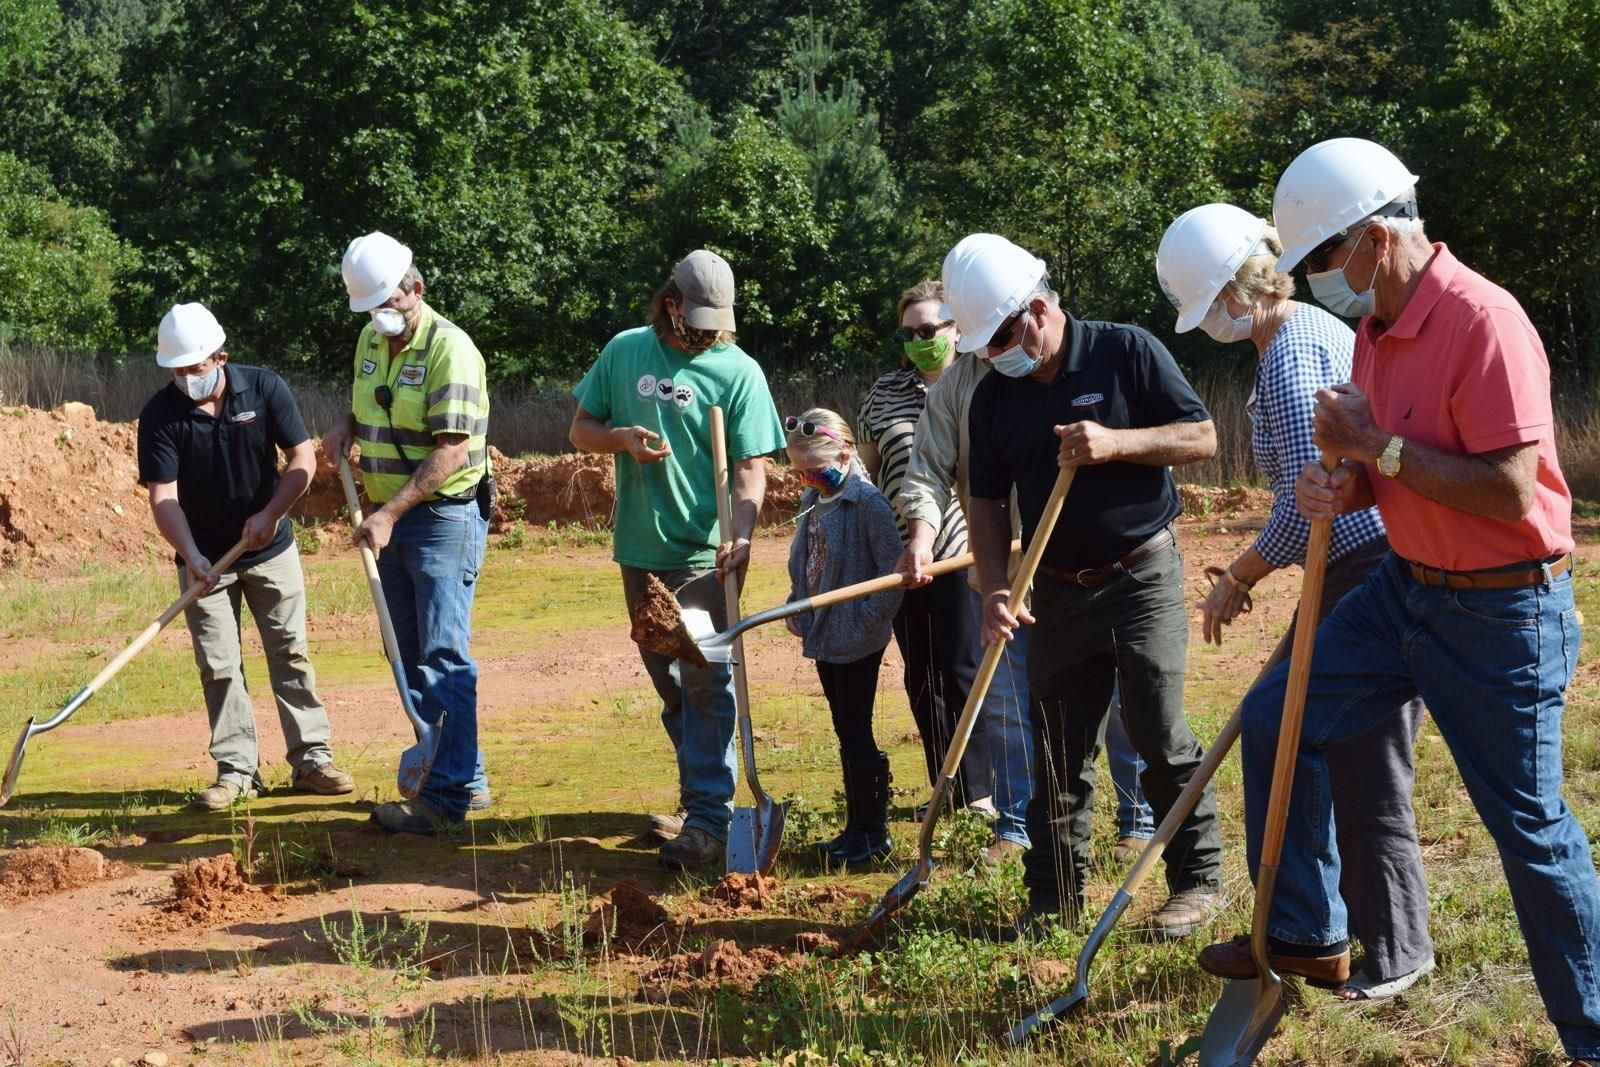 New Habitat community breaks ground in Waynesville